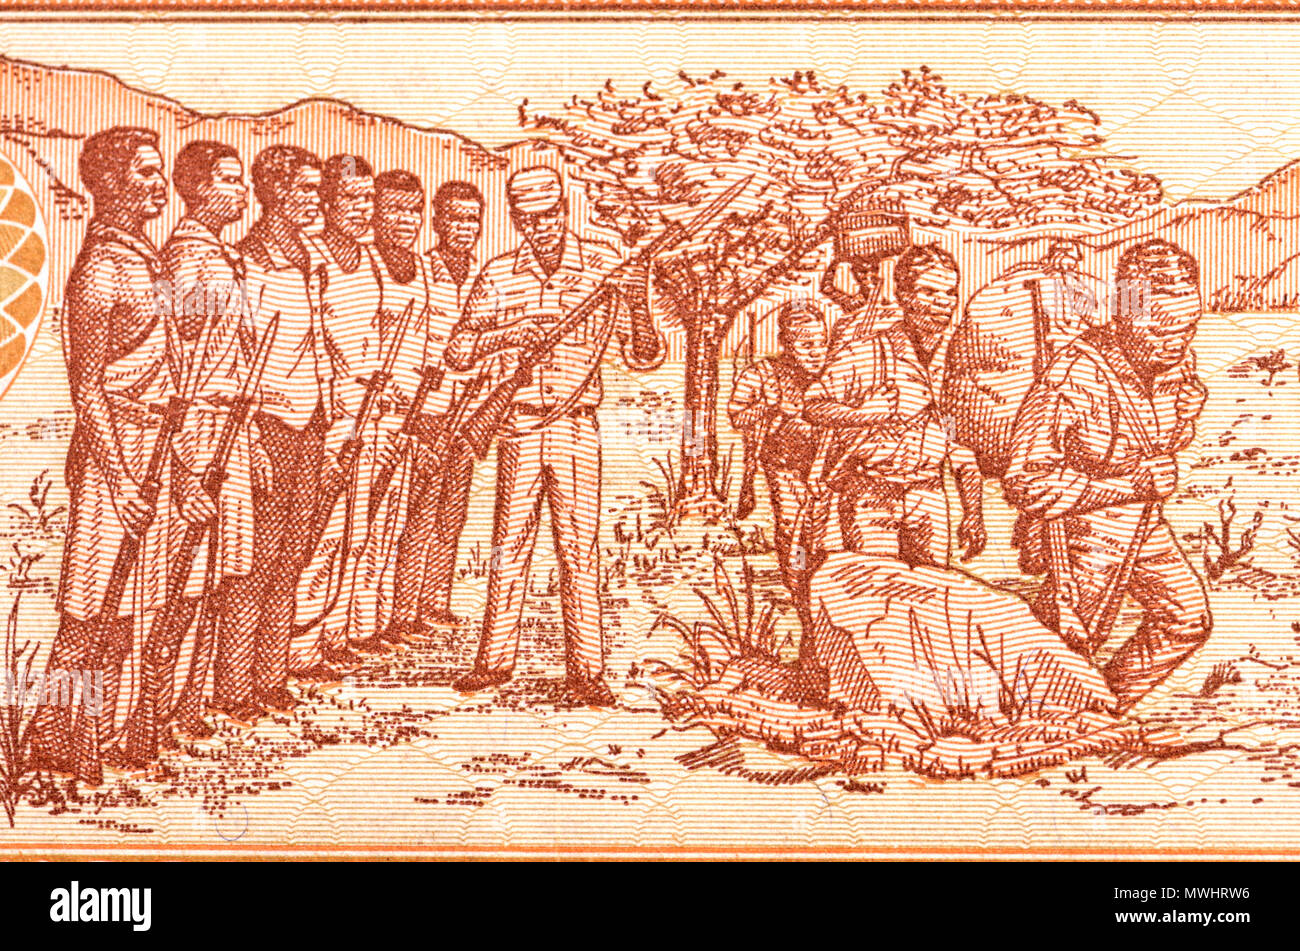 Detail from a Mozambique 50 Meticais banknote showing soldiers in training - Stock Image